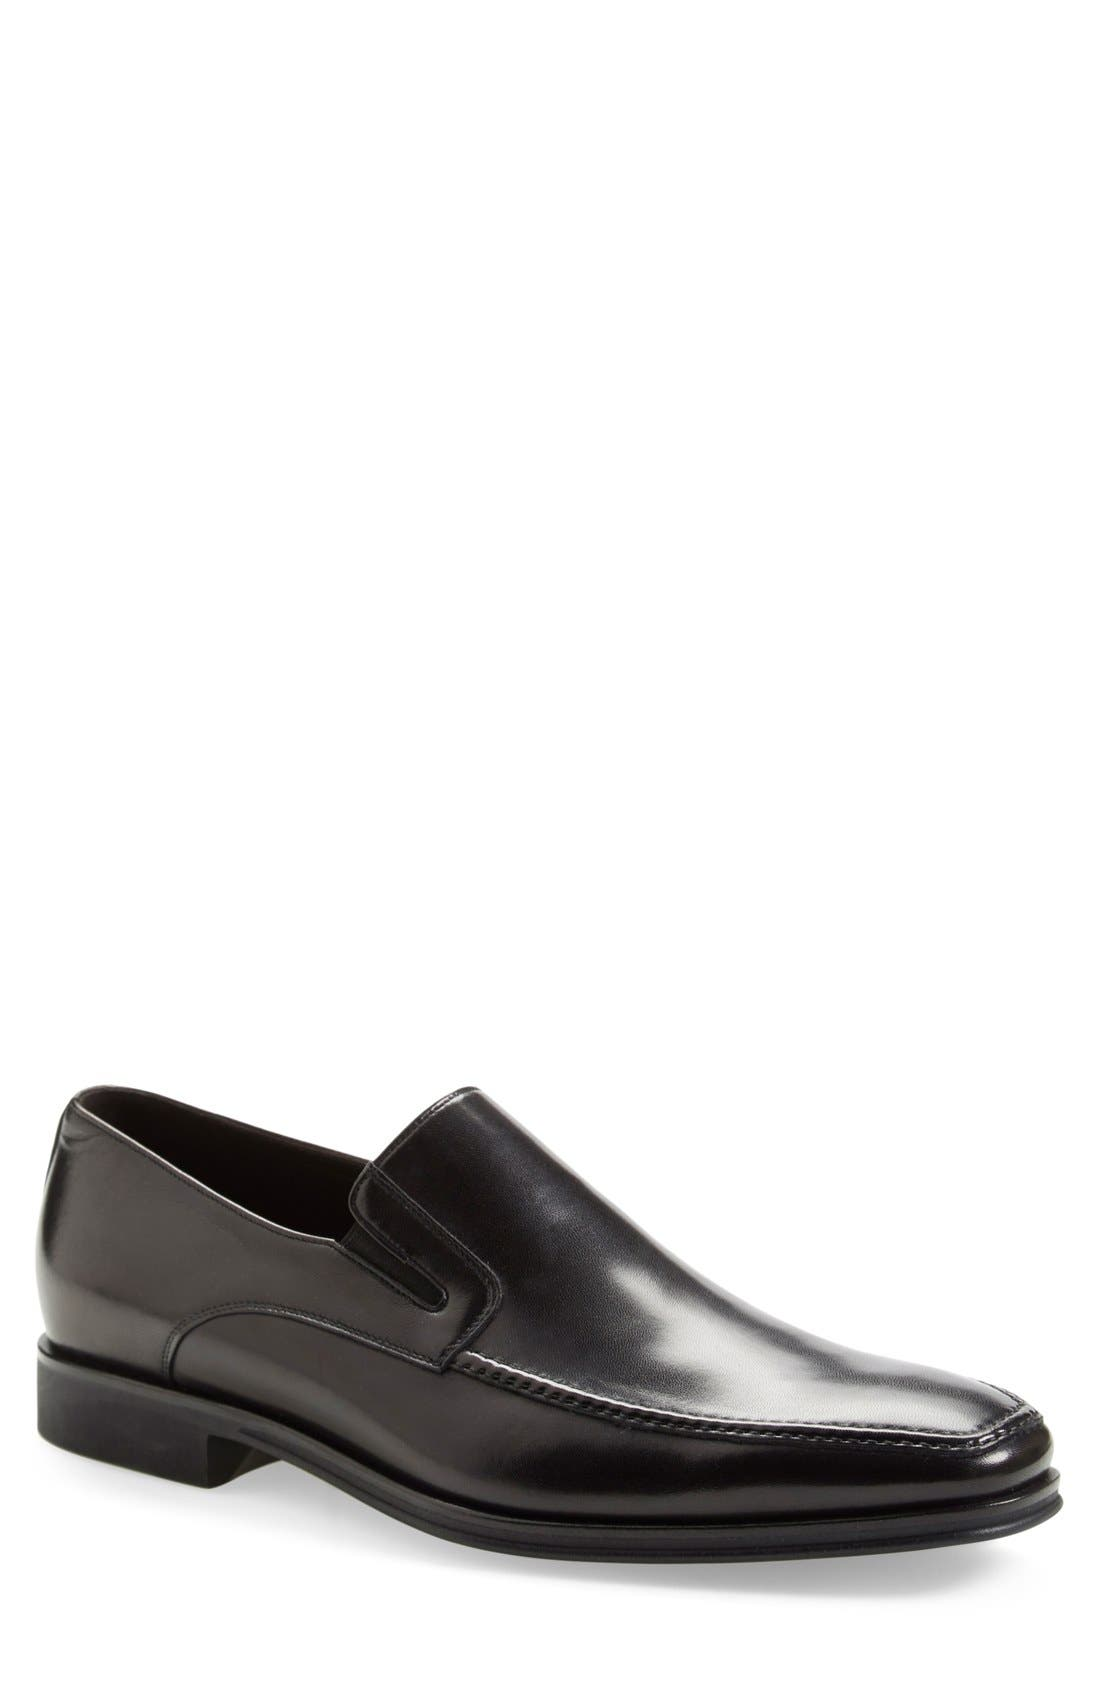 Alternate Image 1 Selected - Monte Rosso Lucca Nappa Leather Loafer (Men)